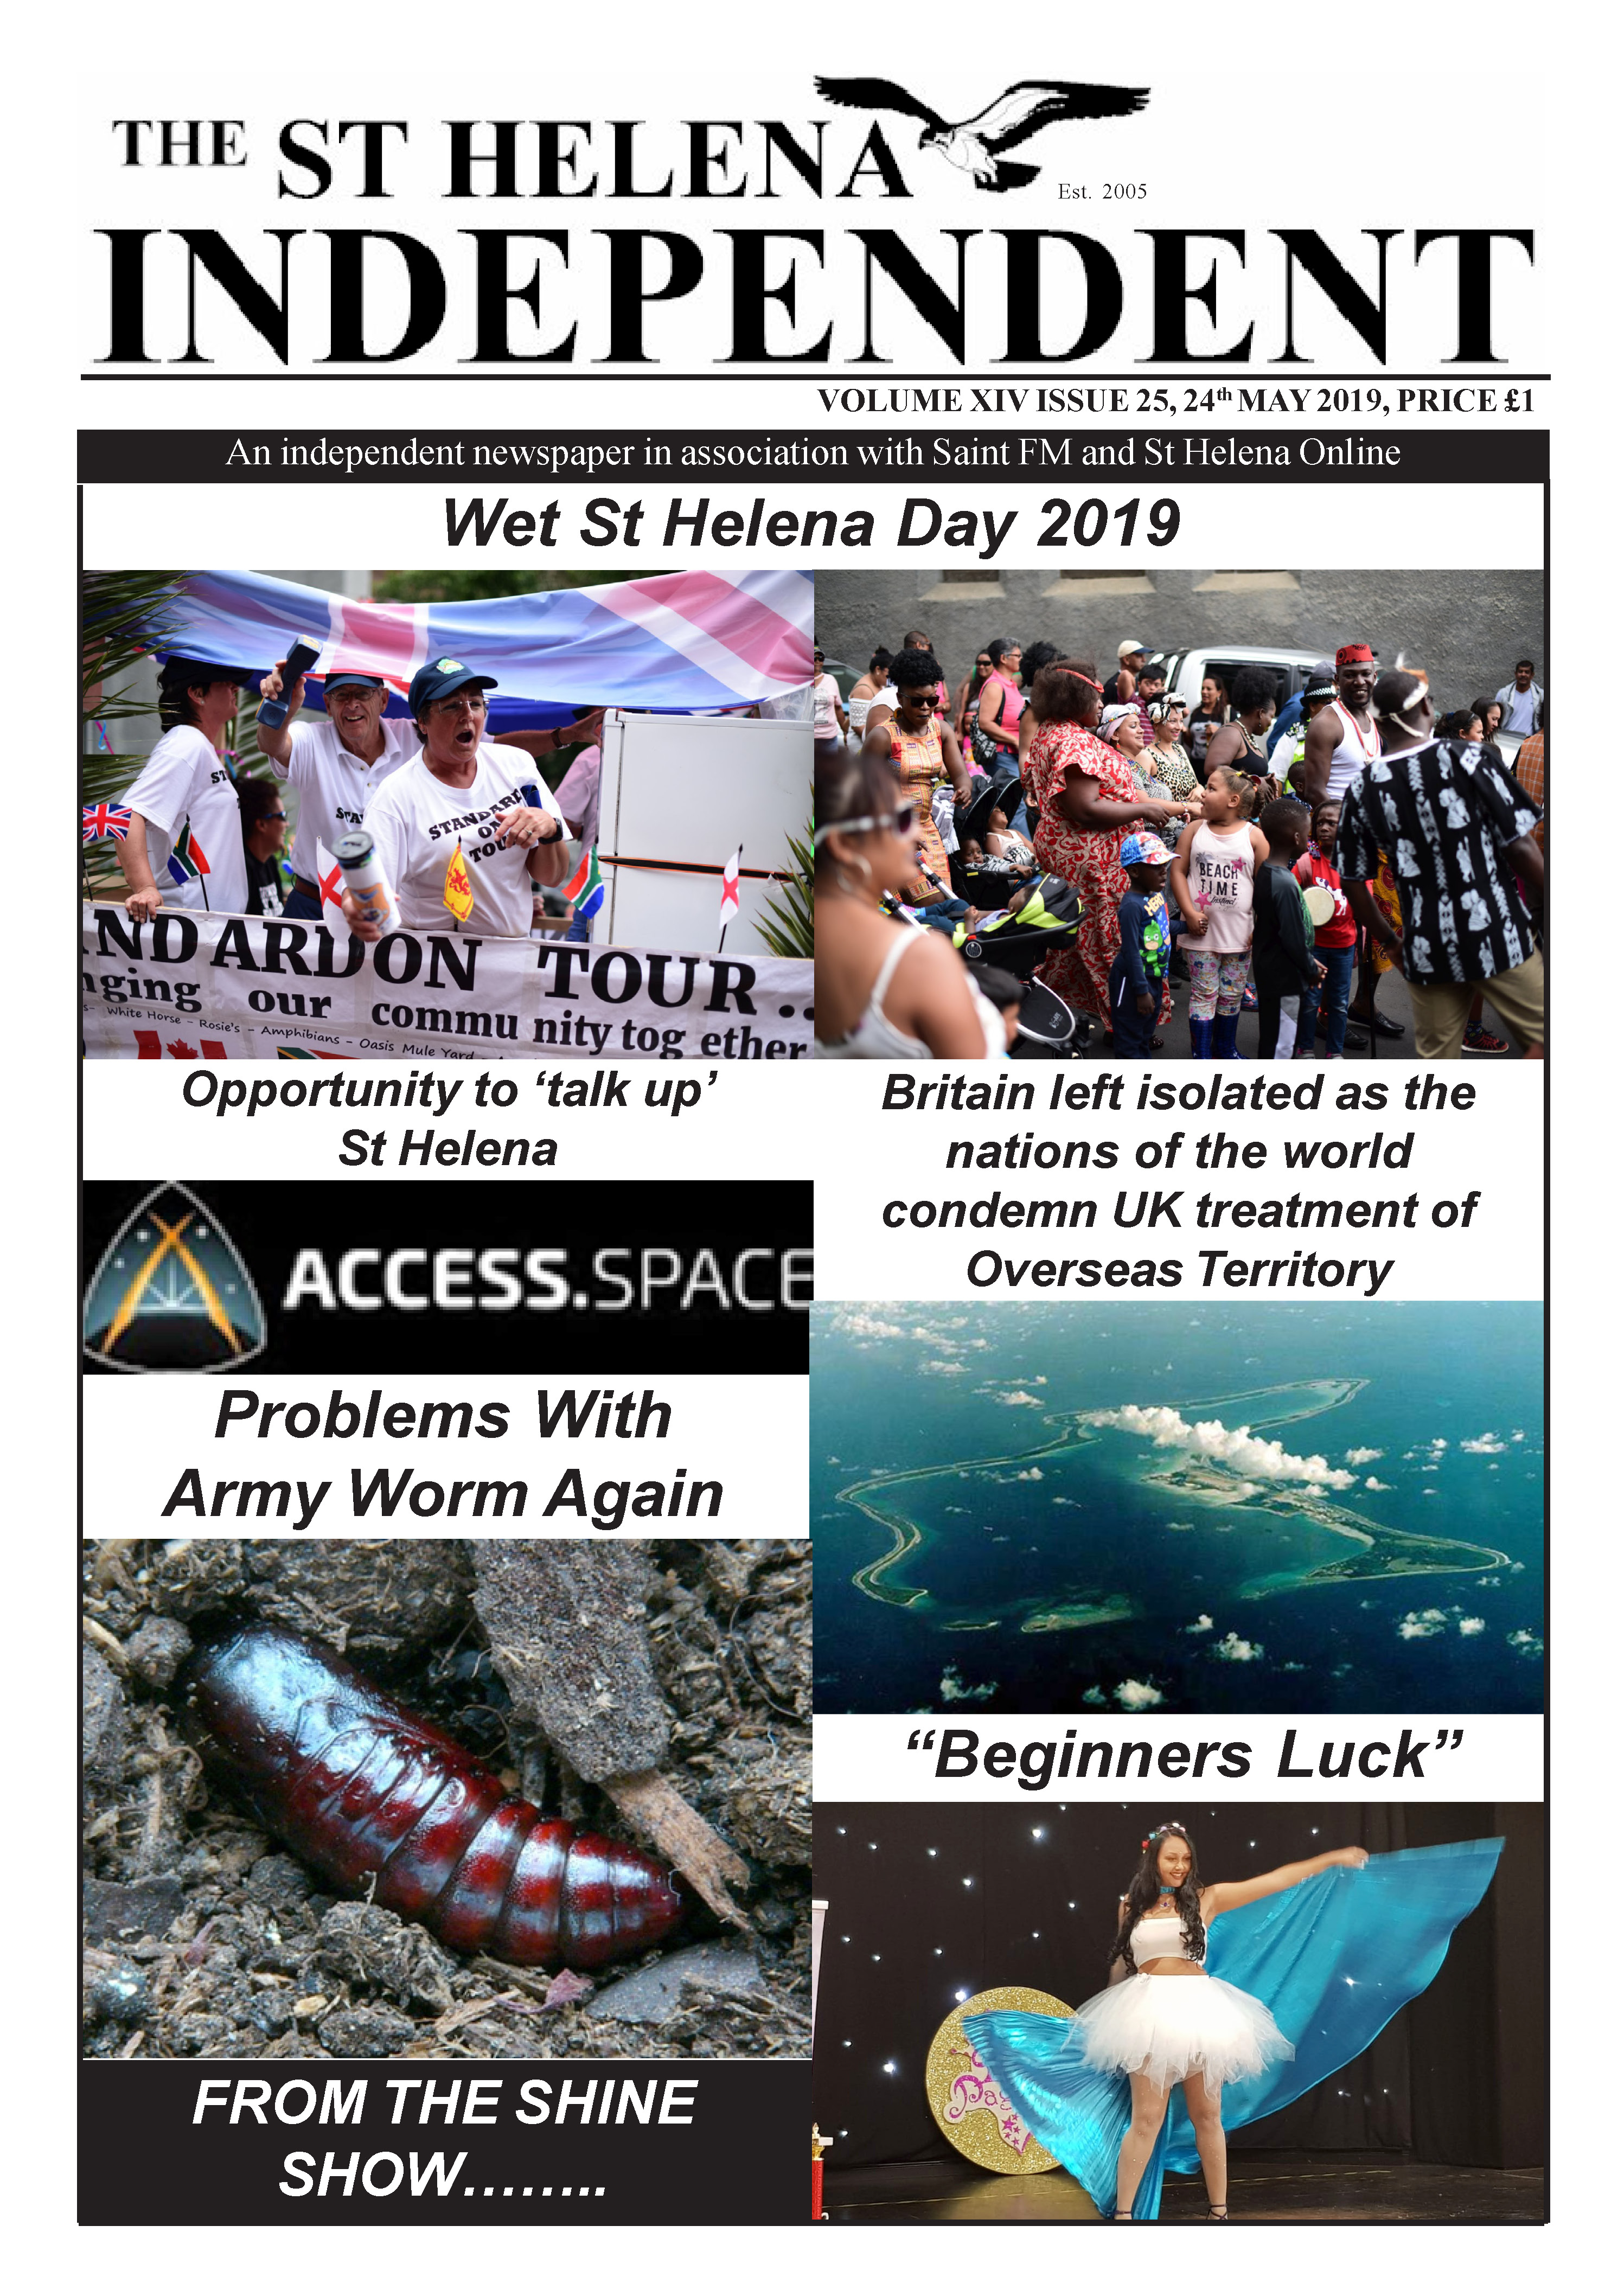 St Helena Independent 20190524